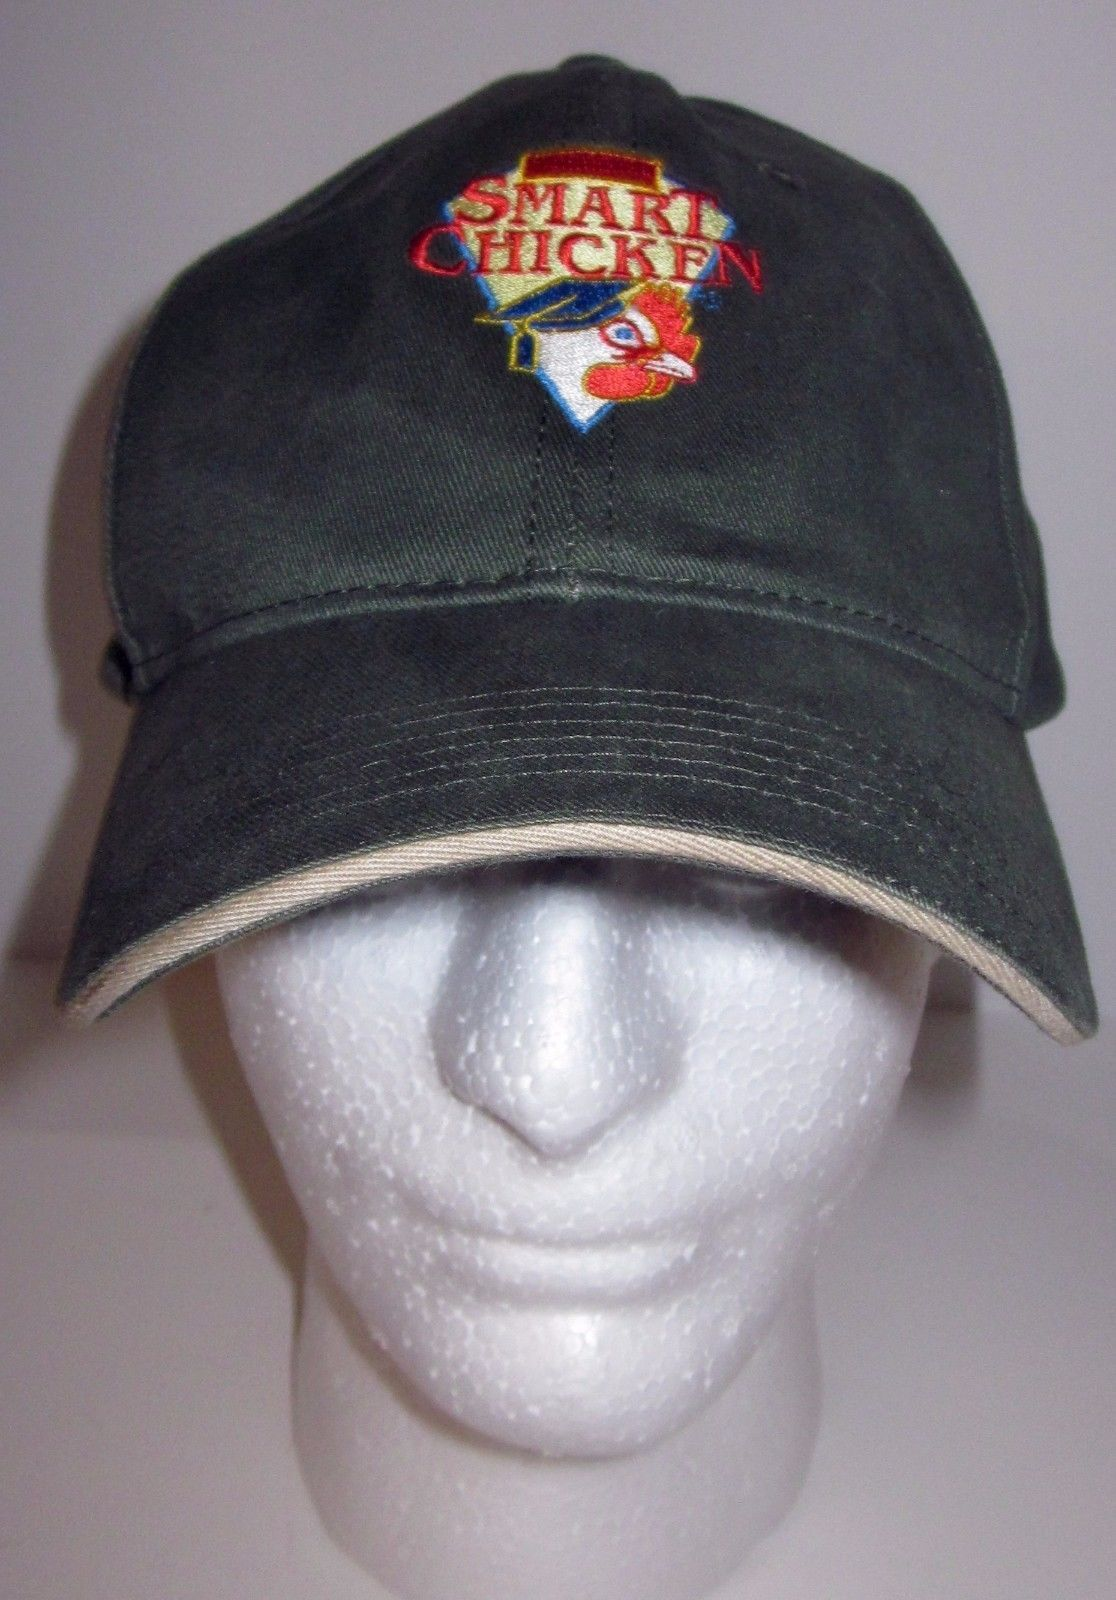 a4cf88ed062 Air Chilled Smart Chicken Employee Hat Cap - and 50 similar items